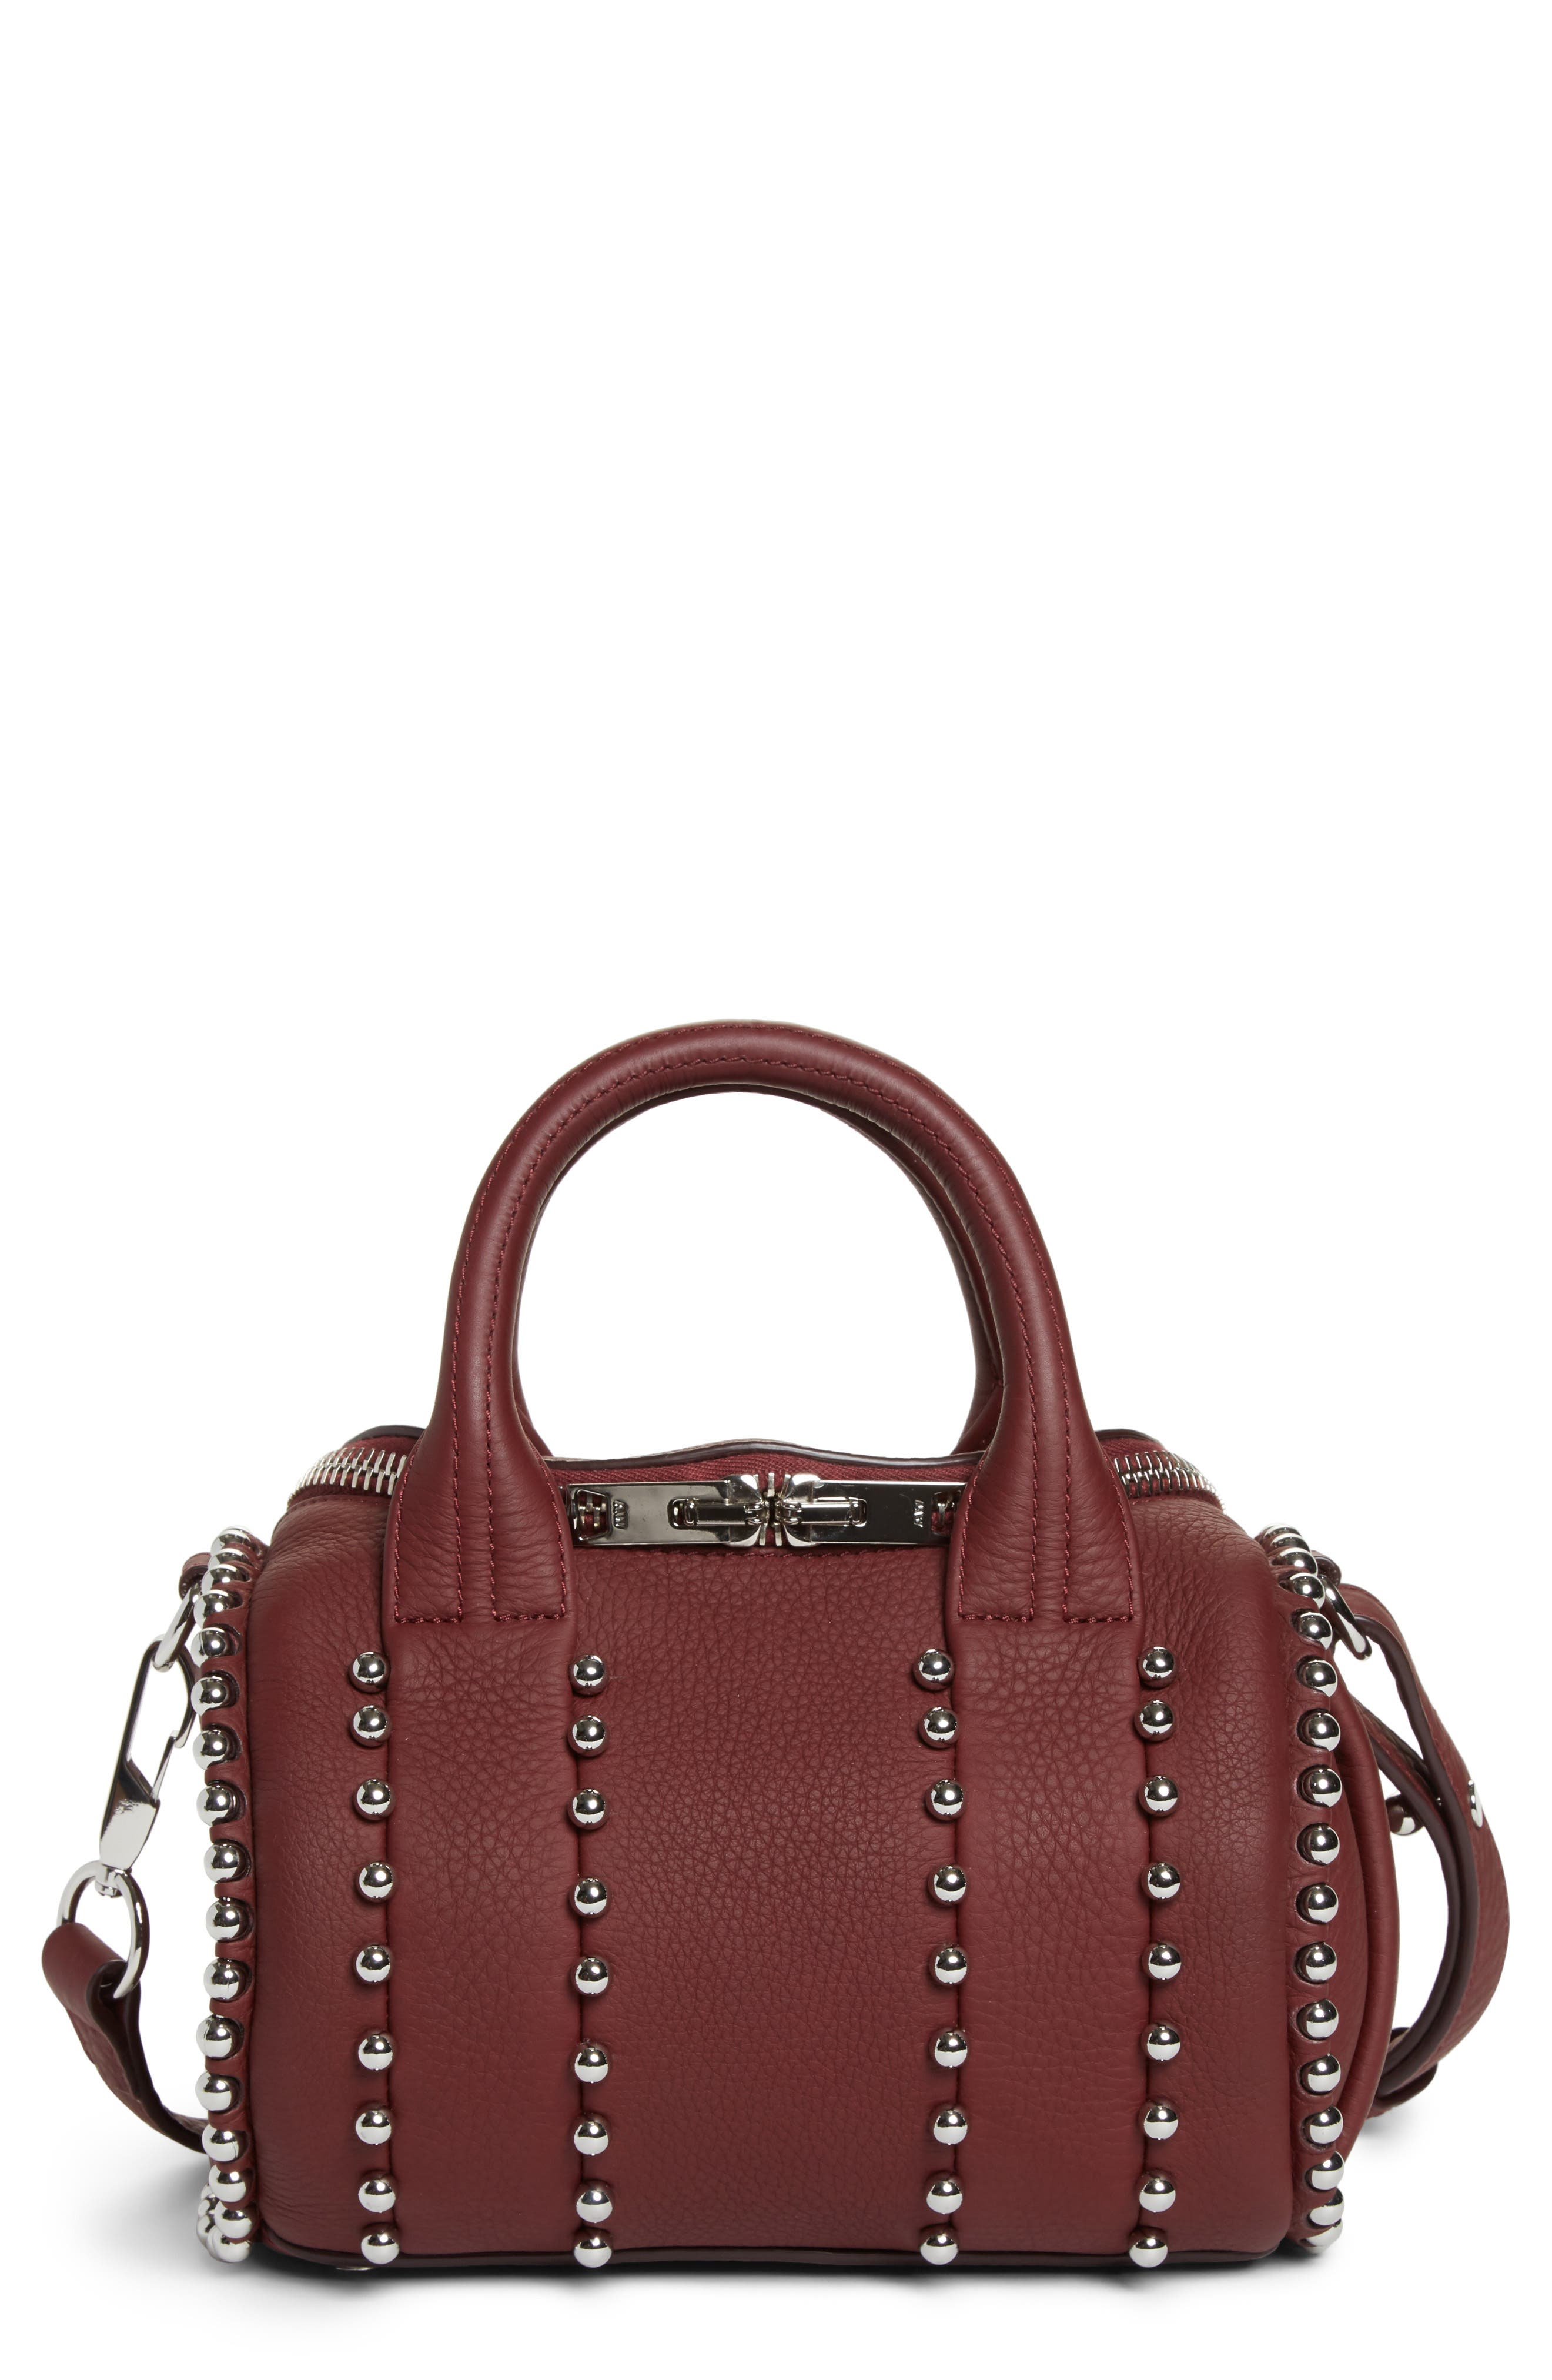 Mini Rockie Studded Leather Crossbody Satchel,                             Main thumbnail 1, color,                             Beet